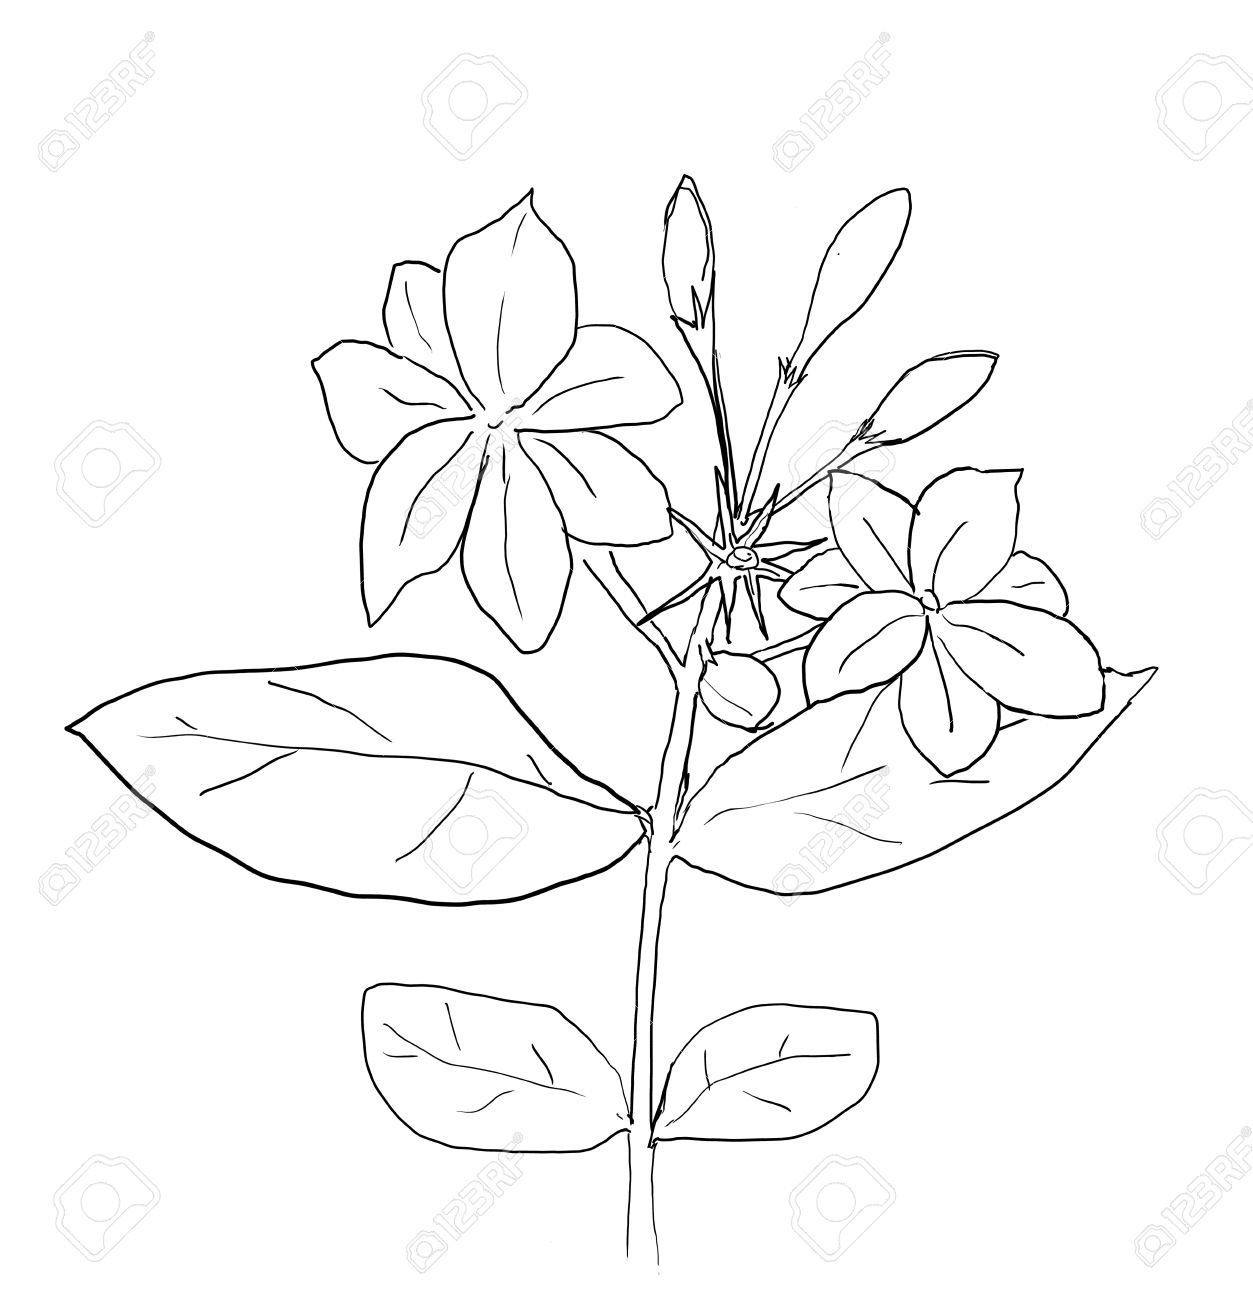 1253x1300 Arabian Jasmine Flower Drawing Line Art Stock Photo, Picture